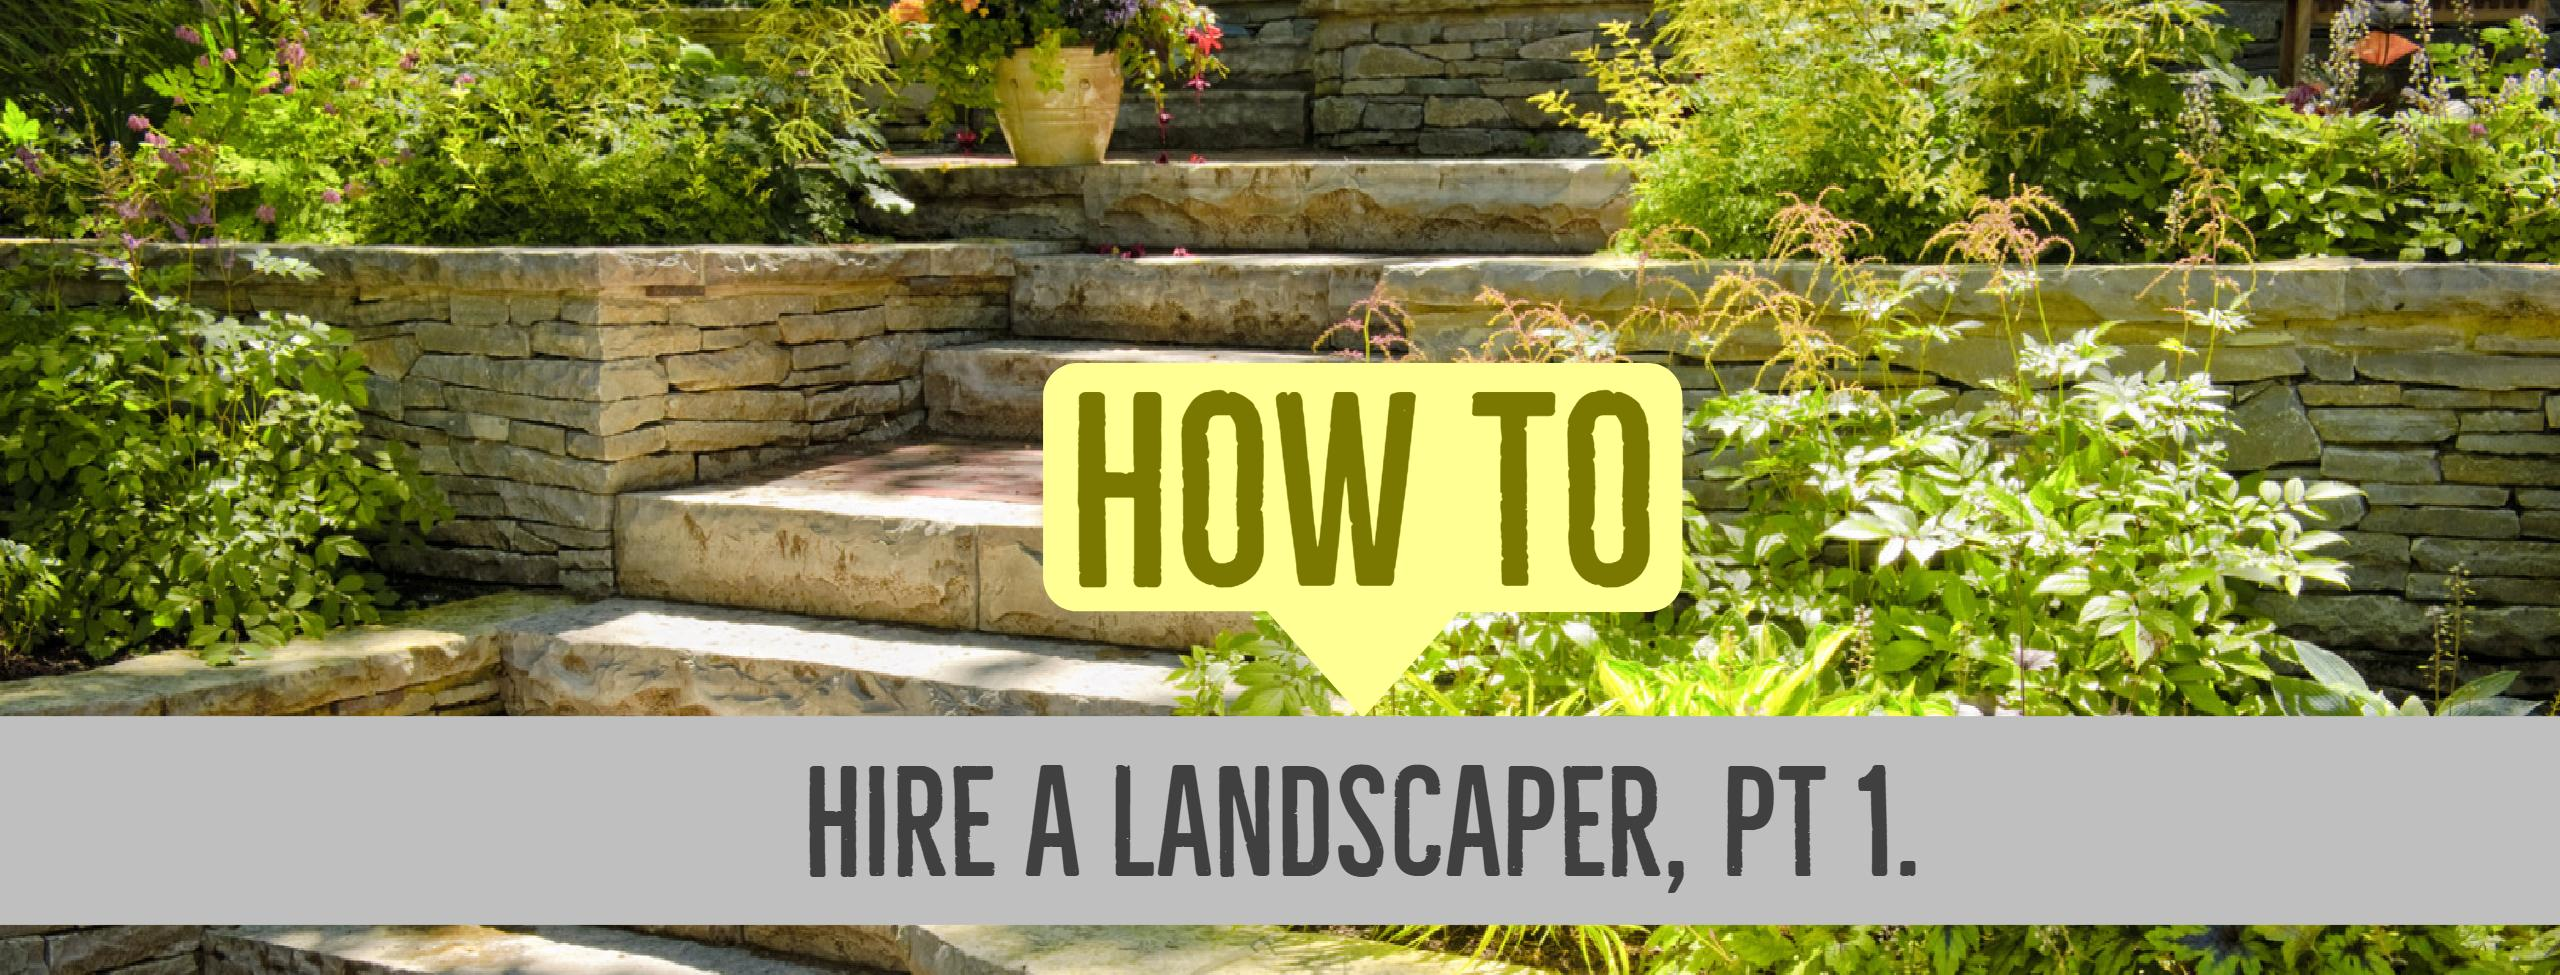 Anne Roberts Gardens how-to-hire-a-landscaper